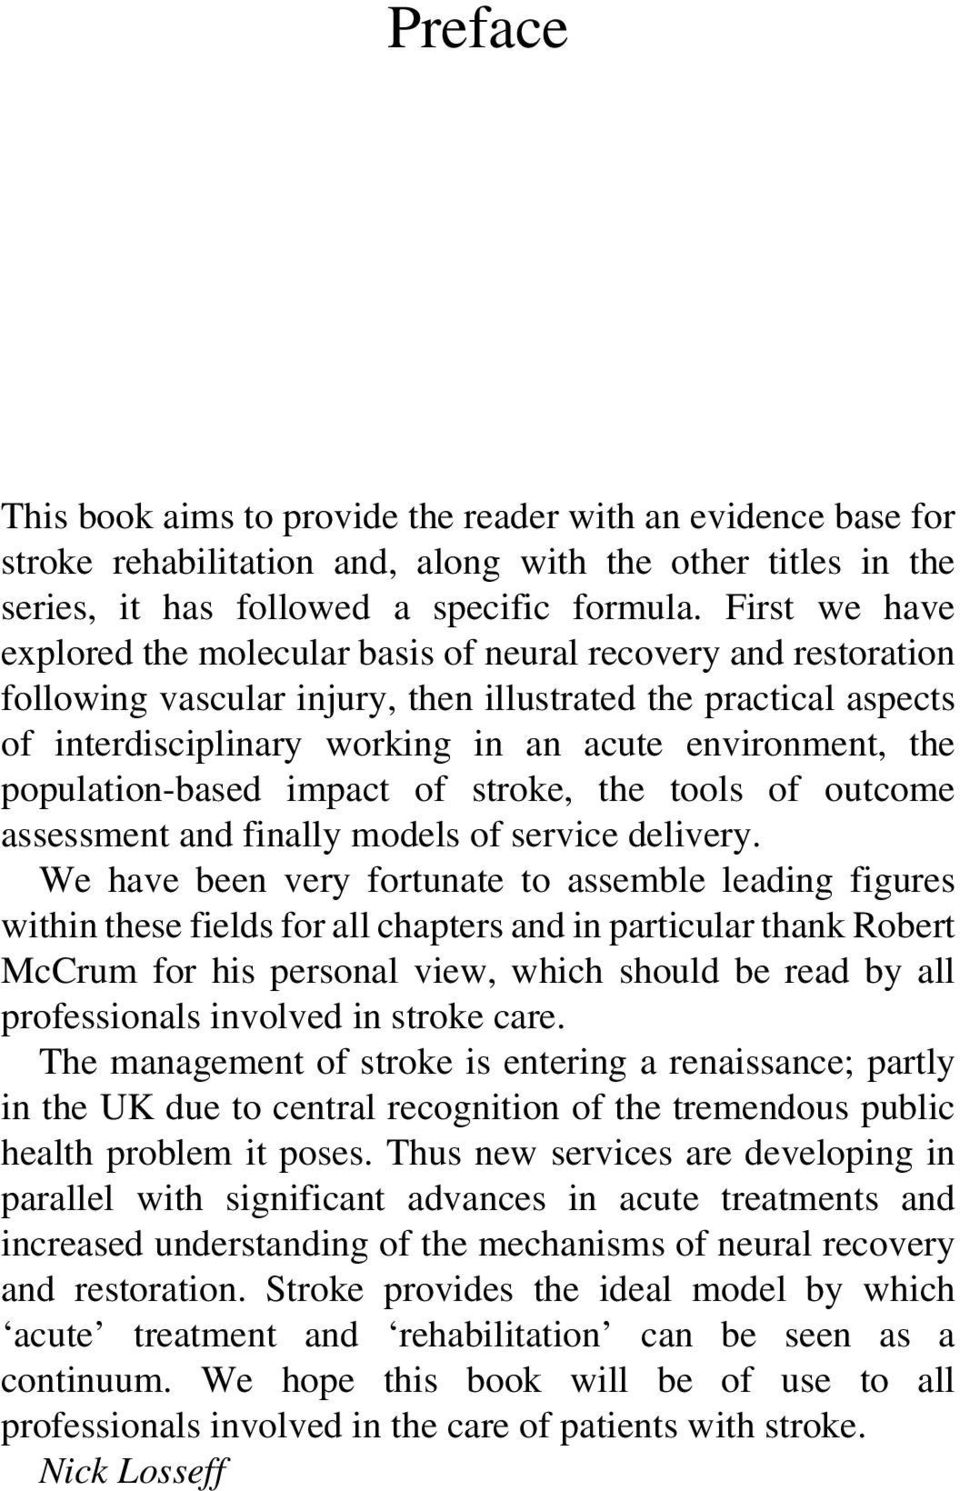 the population-based impact of stroke, the tools of outcome assessment and finally models of service delivery.